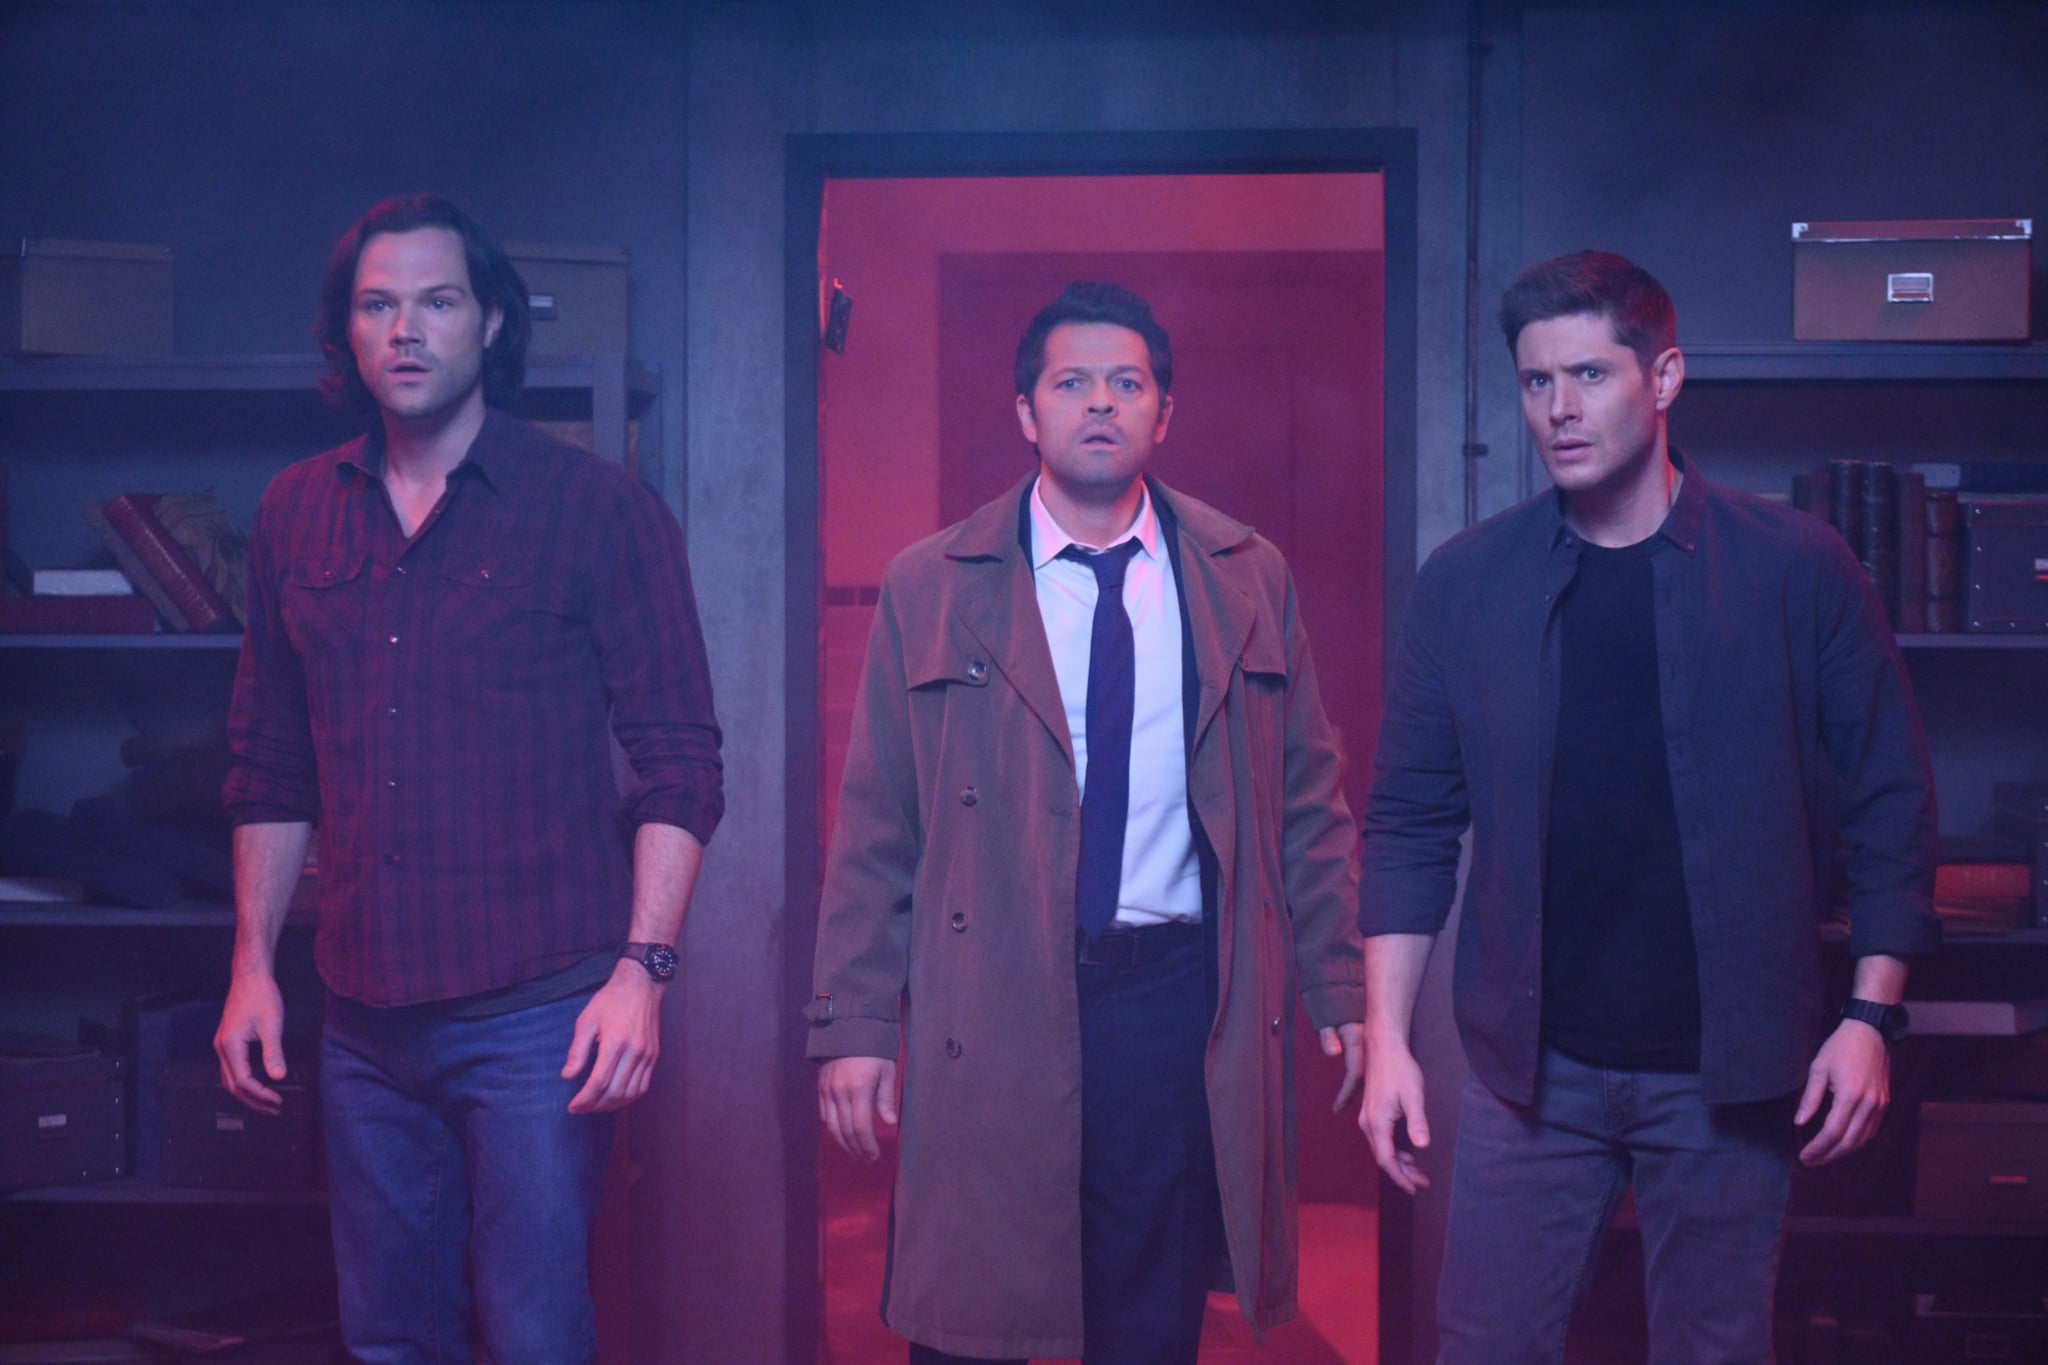 SUPERNATURAL, Jared Padalecki, Misha Collins, Jensen Ackles in 'Jack in the Box', (Season 14, Episode 1419, aired April 18, 2019), ph: Diyah Pera / The CW / Courtesy Everett Collection